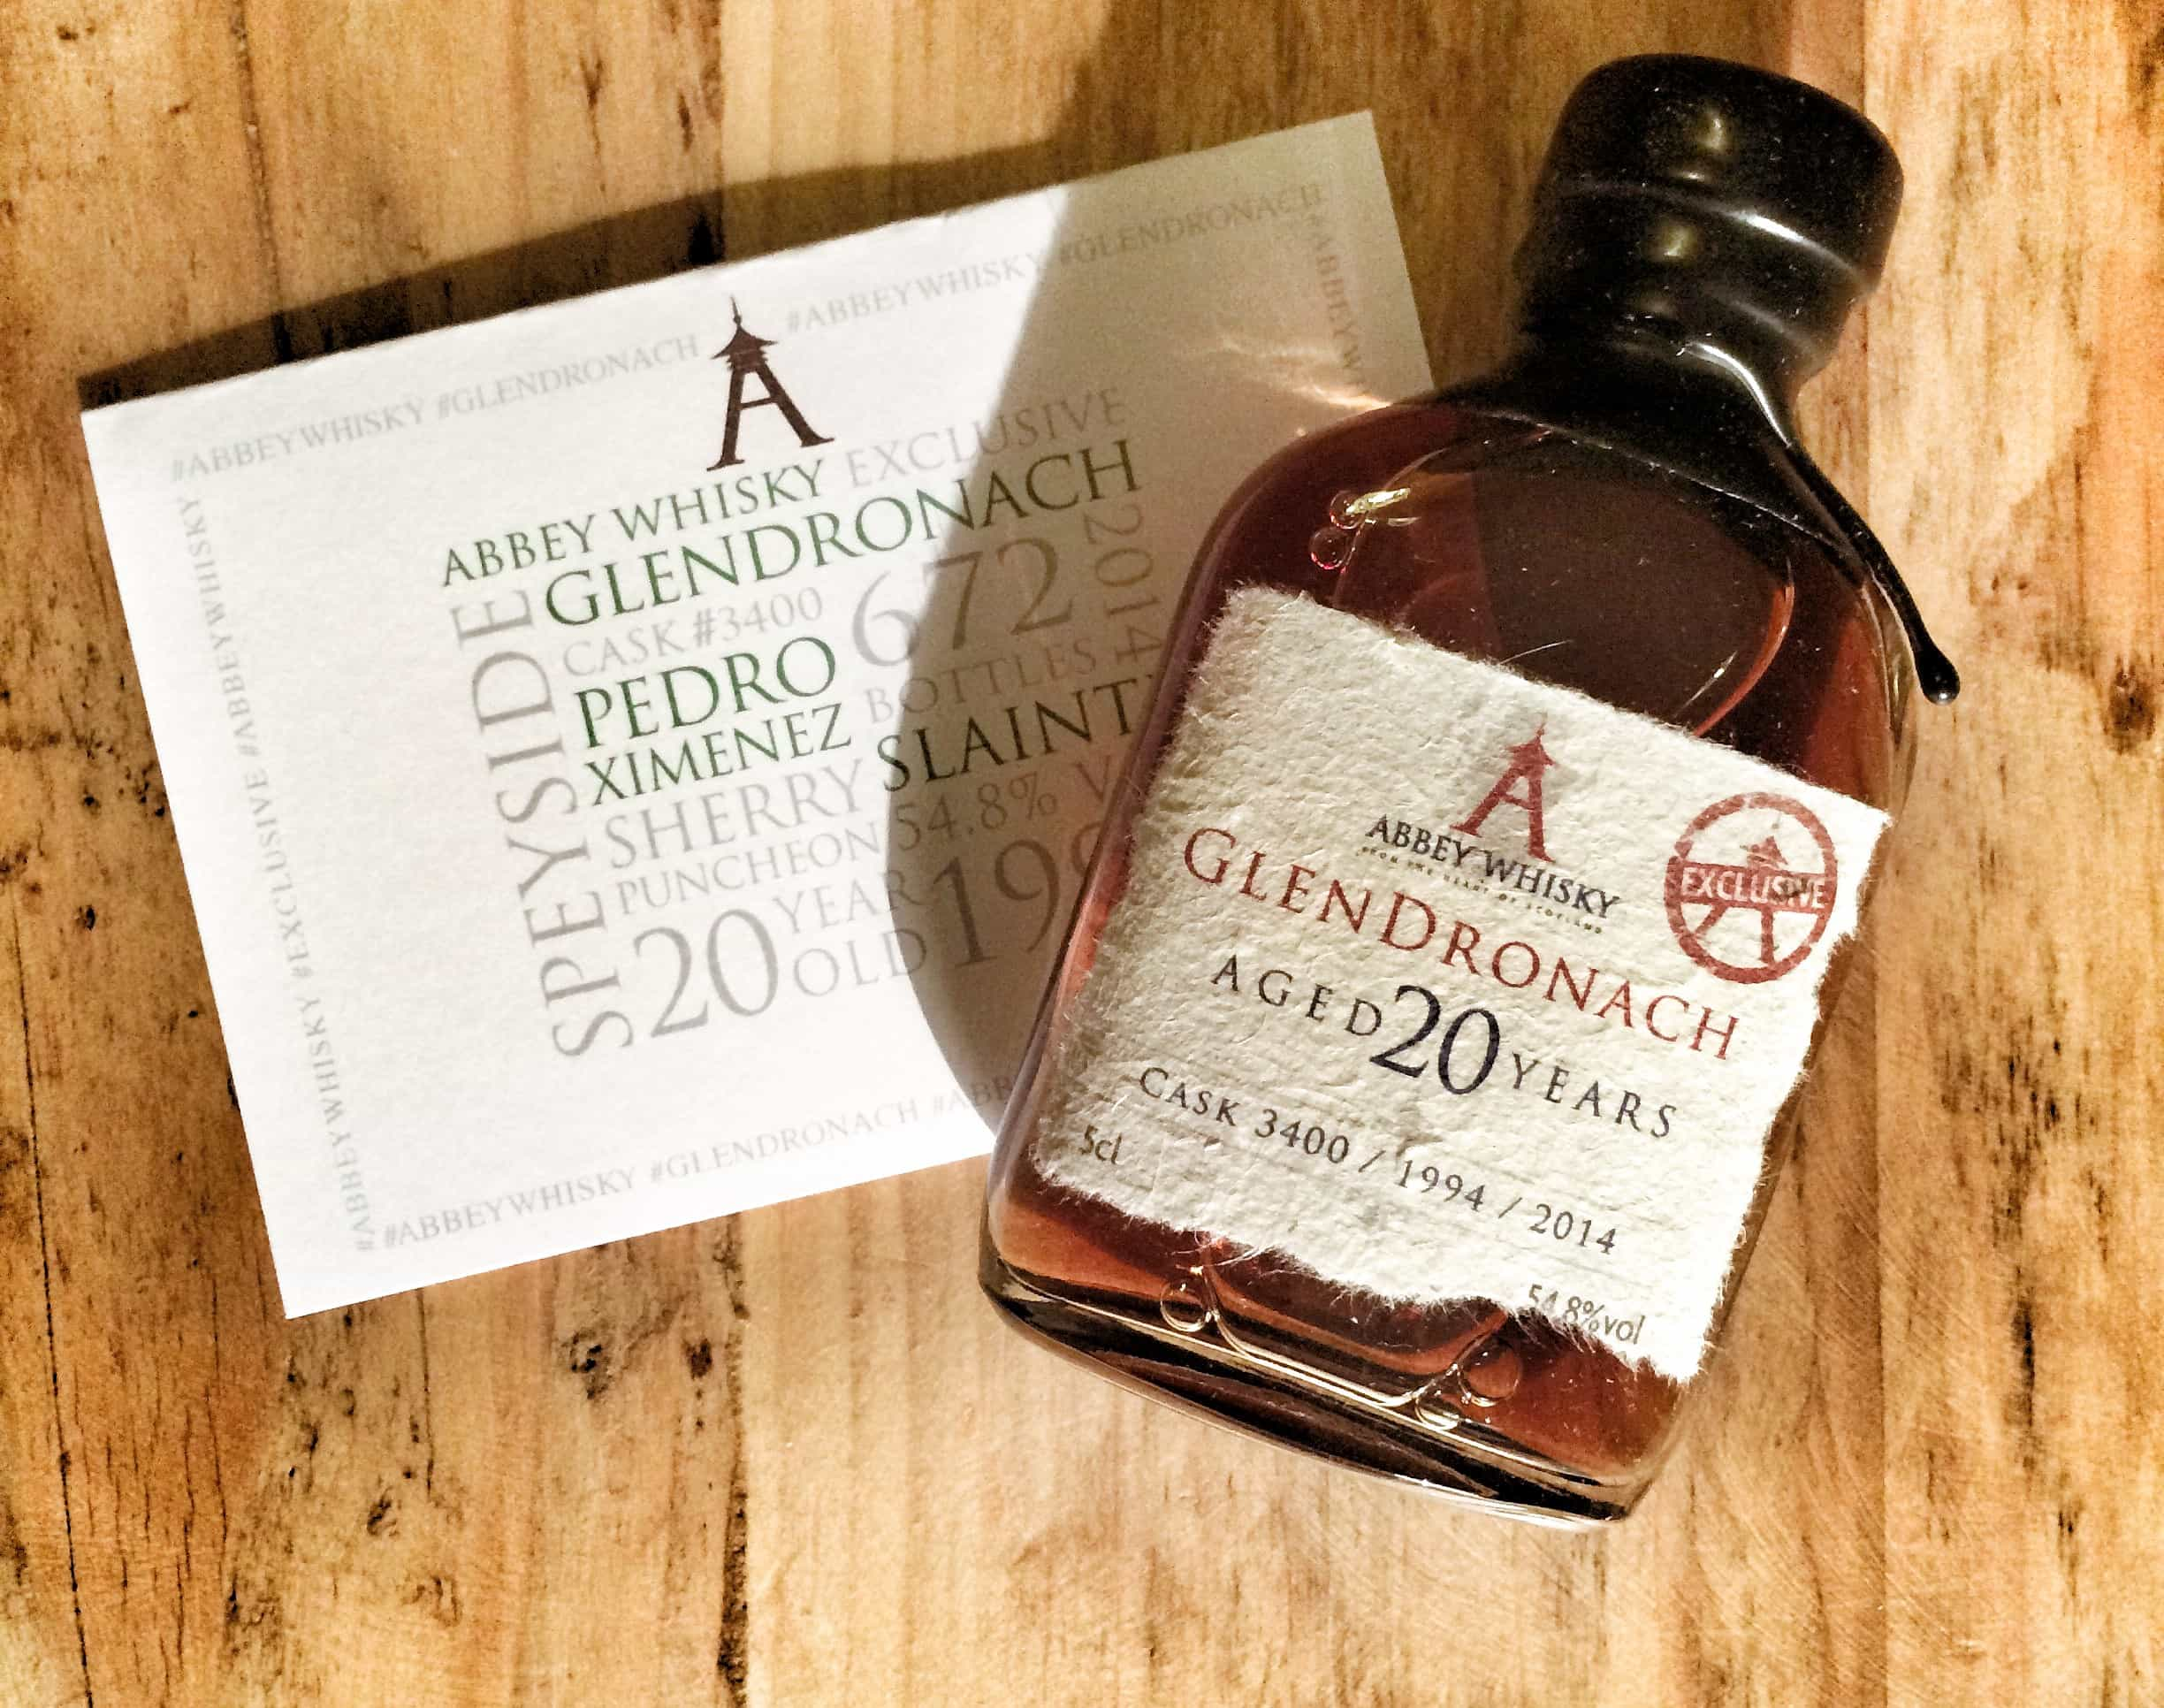 Glendronach 1994 Abbey Whisky